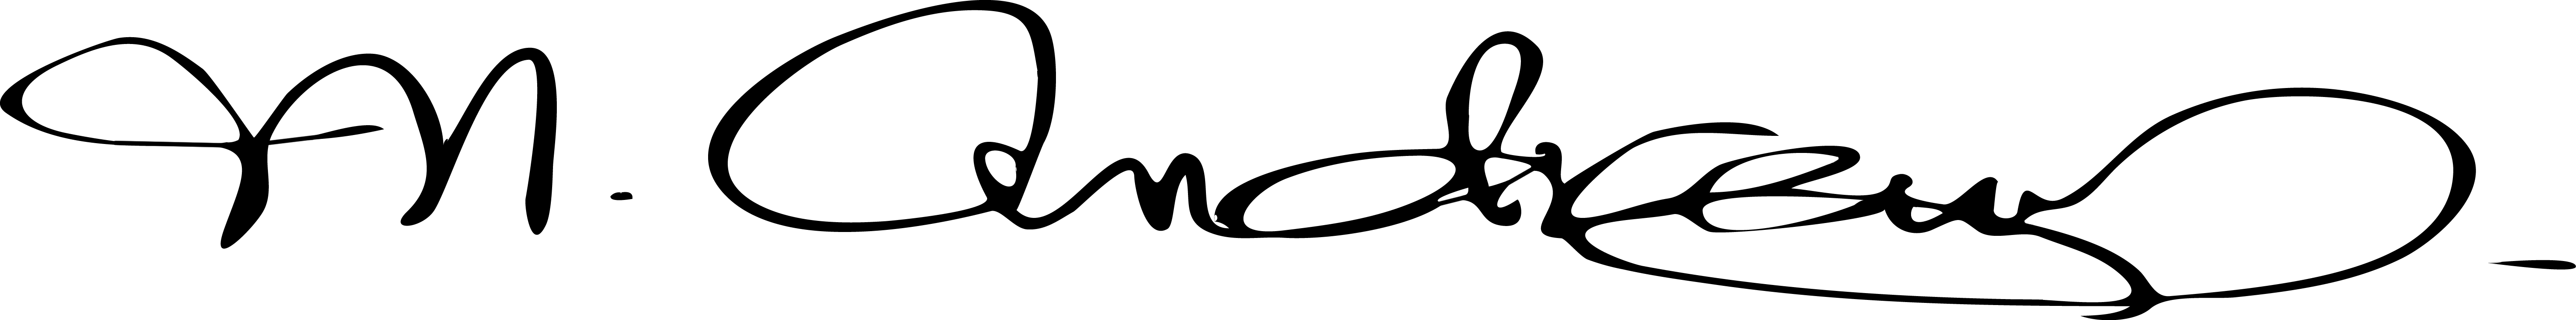 Mindy Andrews Signature